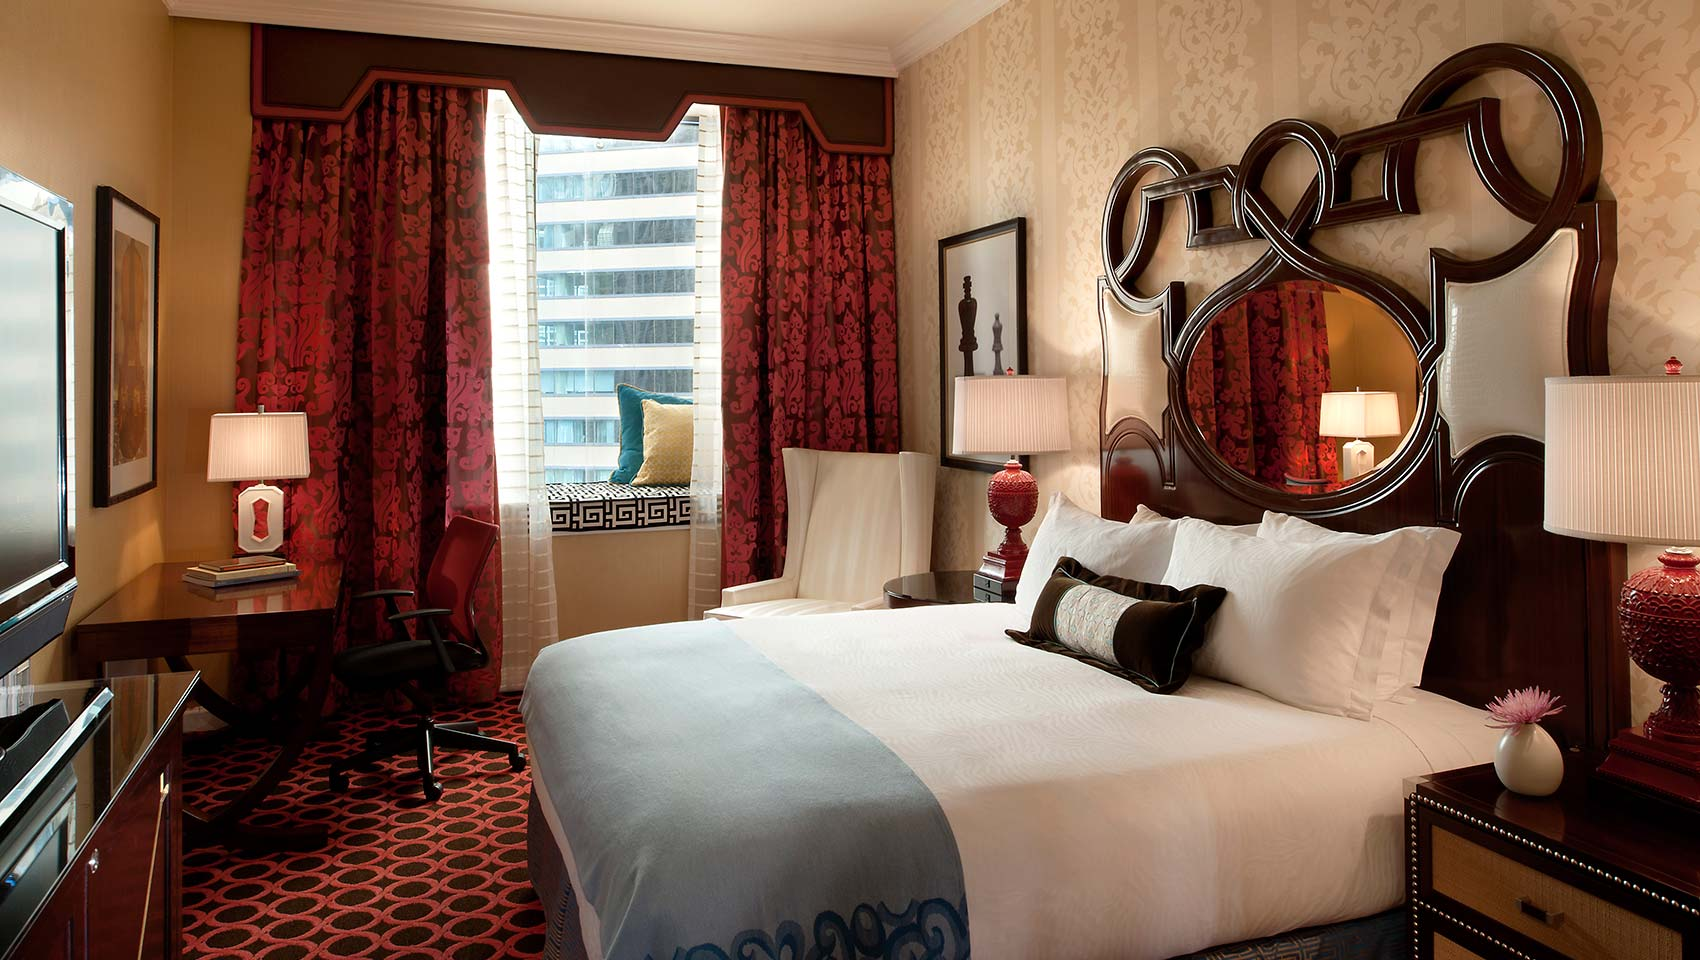 Hotel Candy Hall Holiday Deals Offers Lights Festival The Magnificent Mile